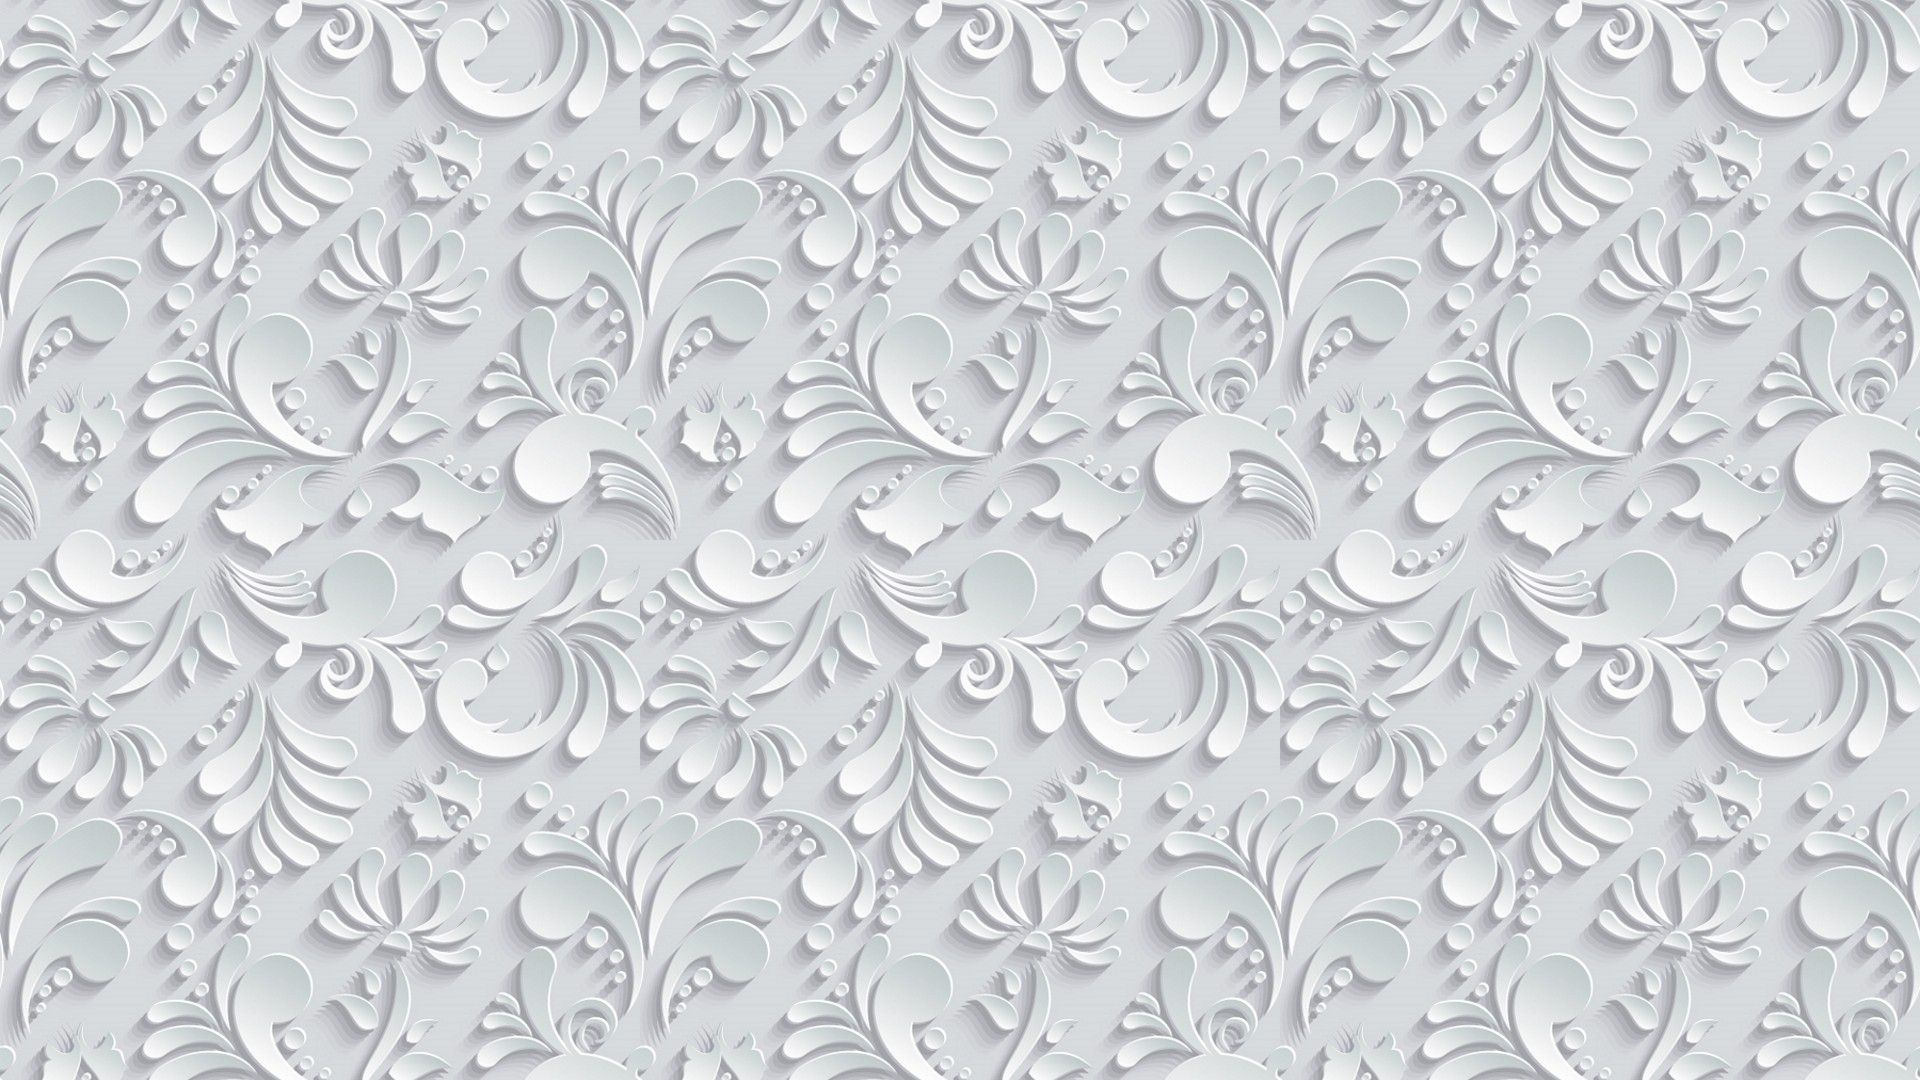 Vector Floral 3d Seamless Pattern on grey background